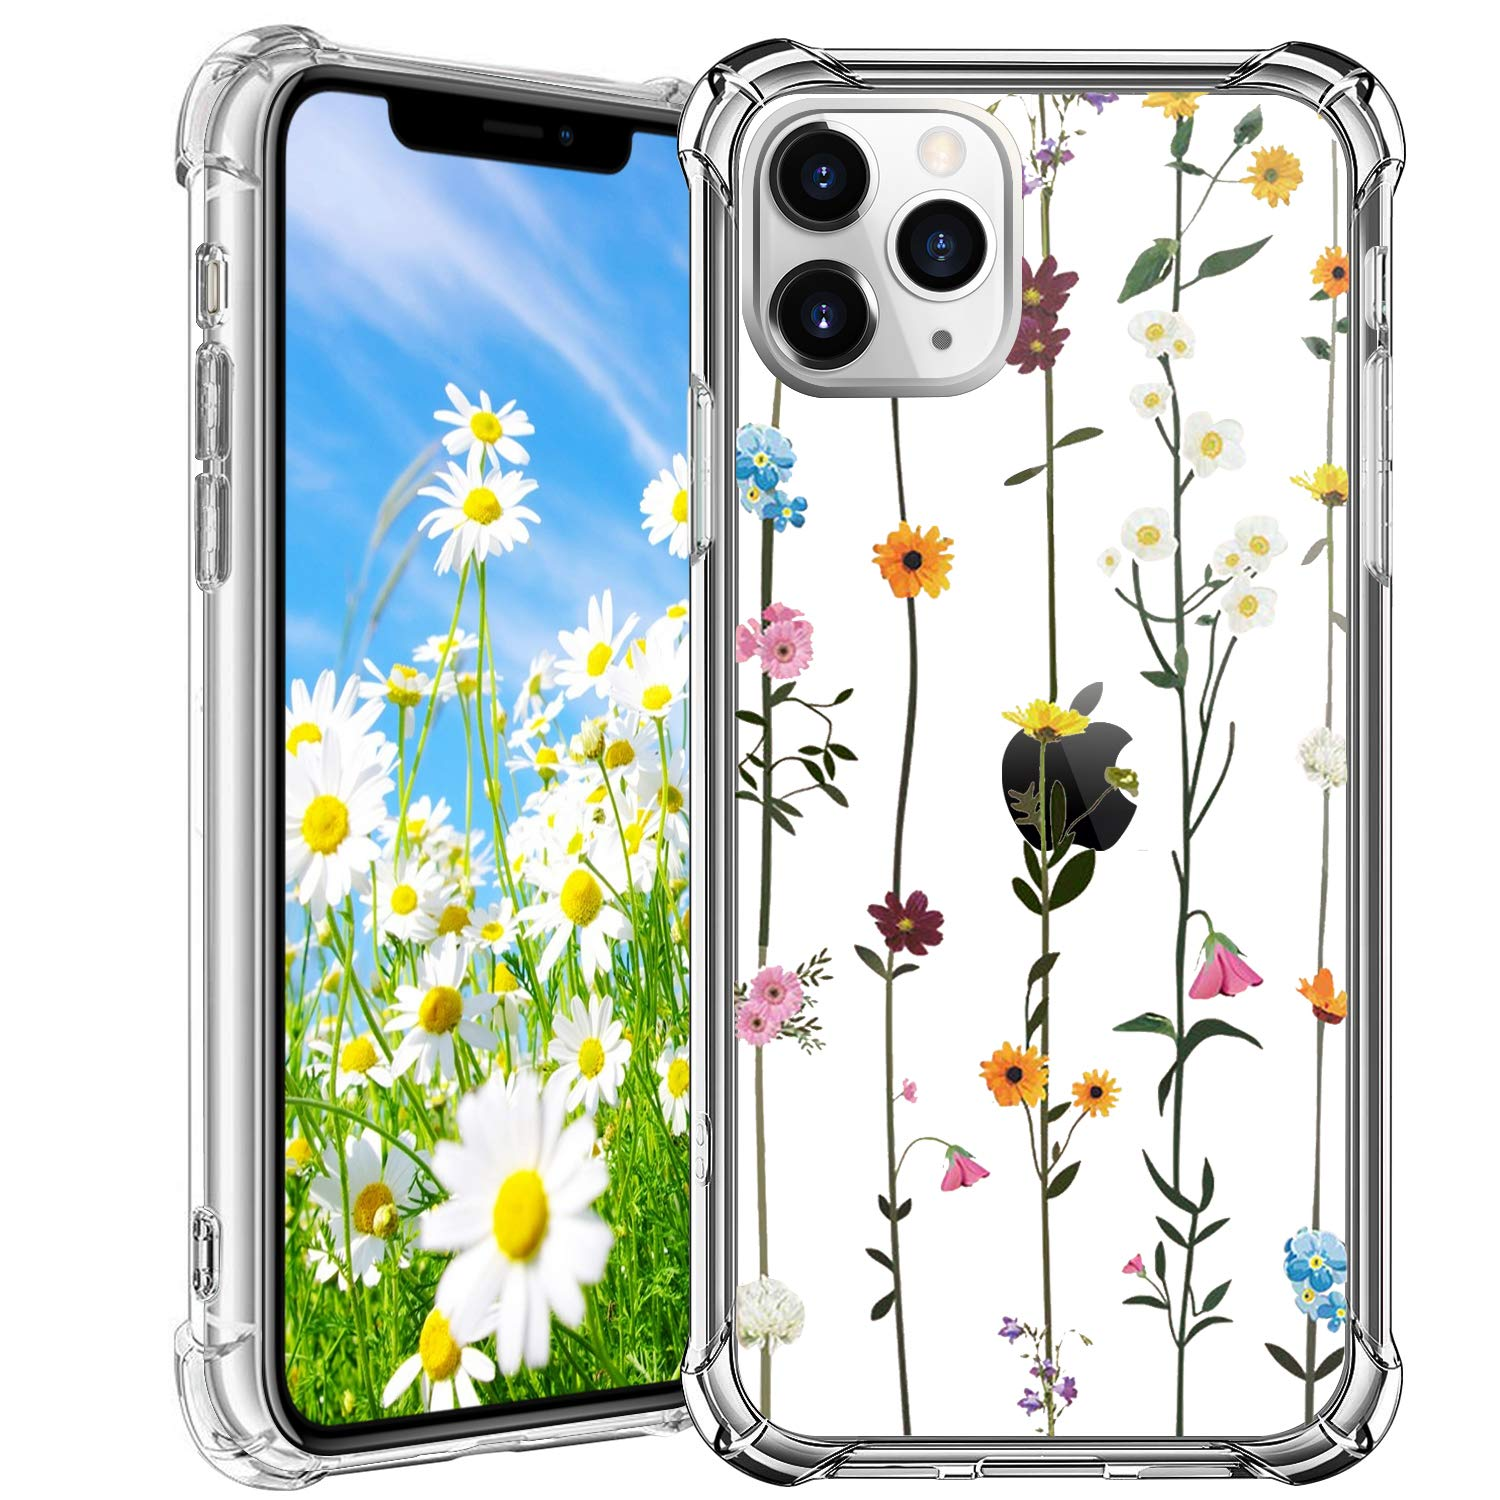 """HBorna Clear iPhone 11 Pro Max Case with Embossed Floral Pattern, Soft Flexible Silicon Phone Case for 6.5"""" iPhone 11 Pro Max"""